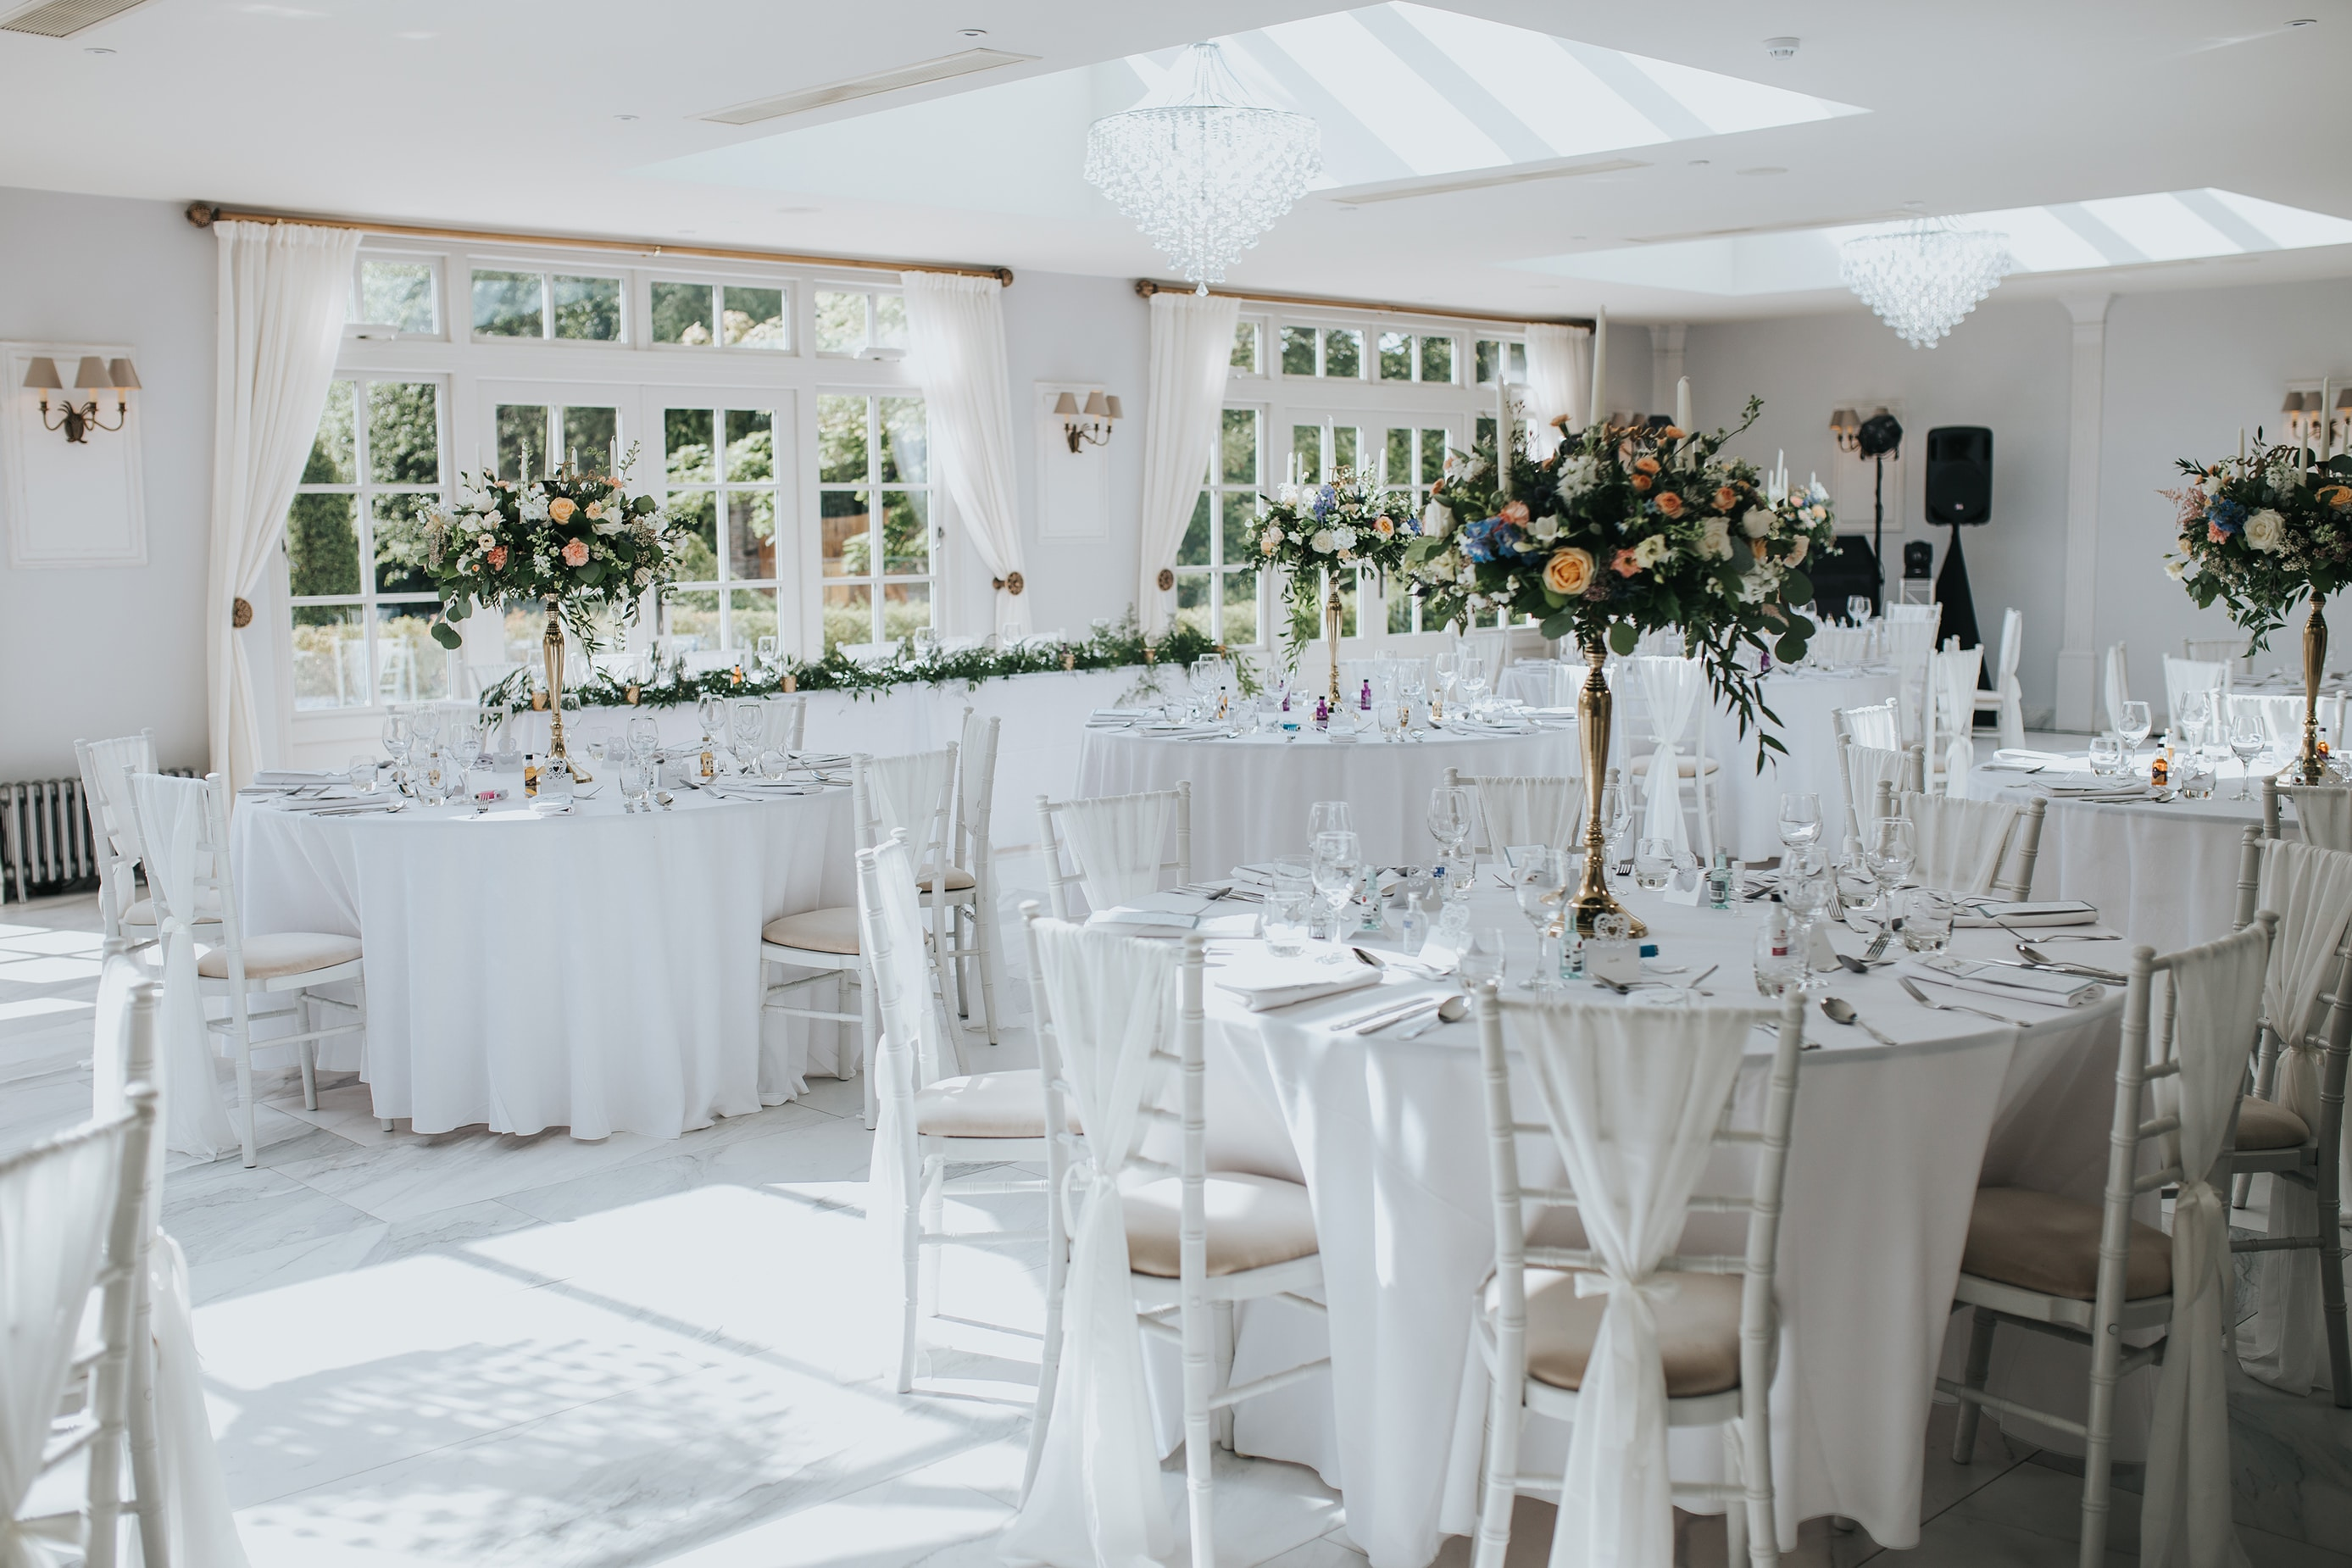 Marble Wedding Decor at Lemore Manor Wedding in Hereford